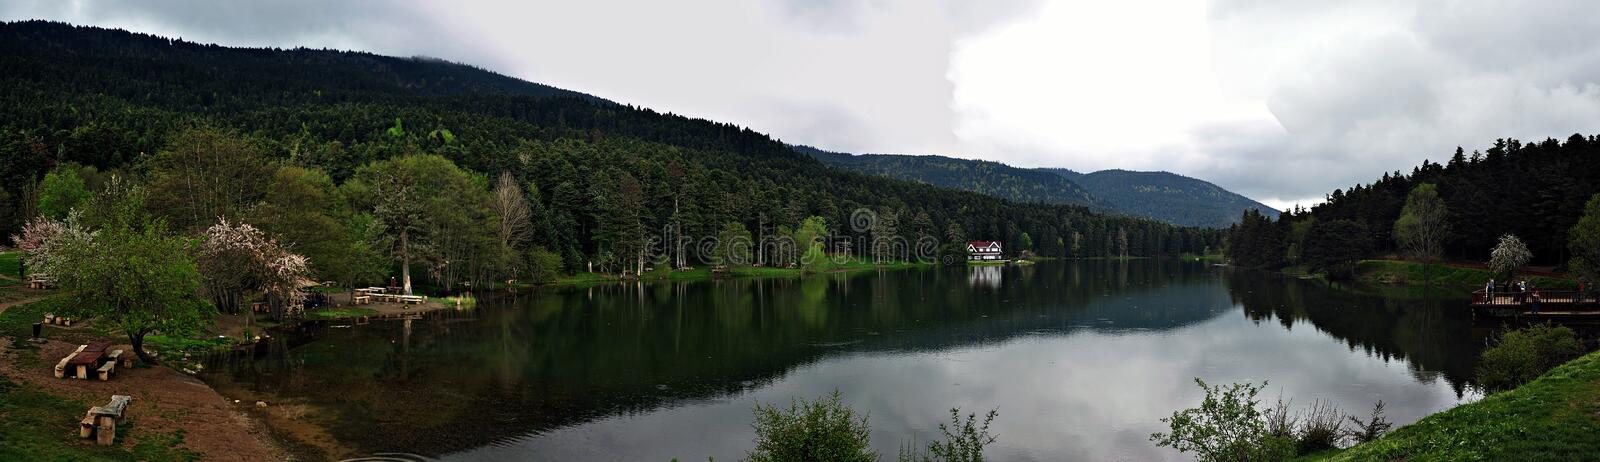 Golcuk Lake in Bolu, Turkey. royalty free stock images